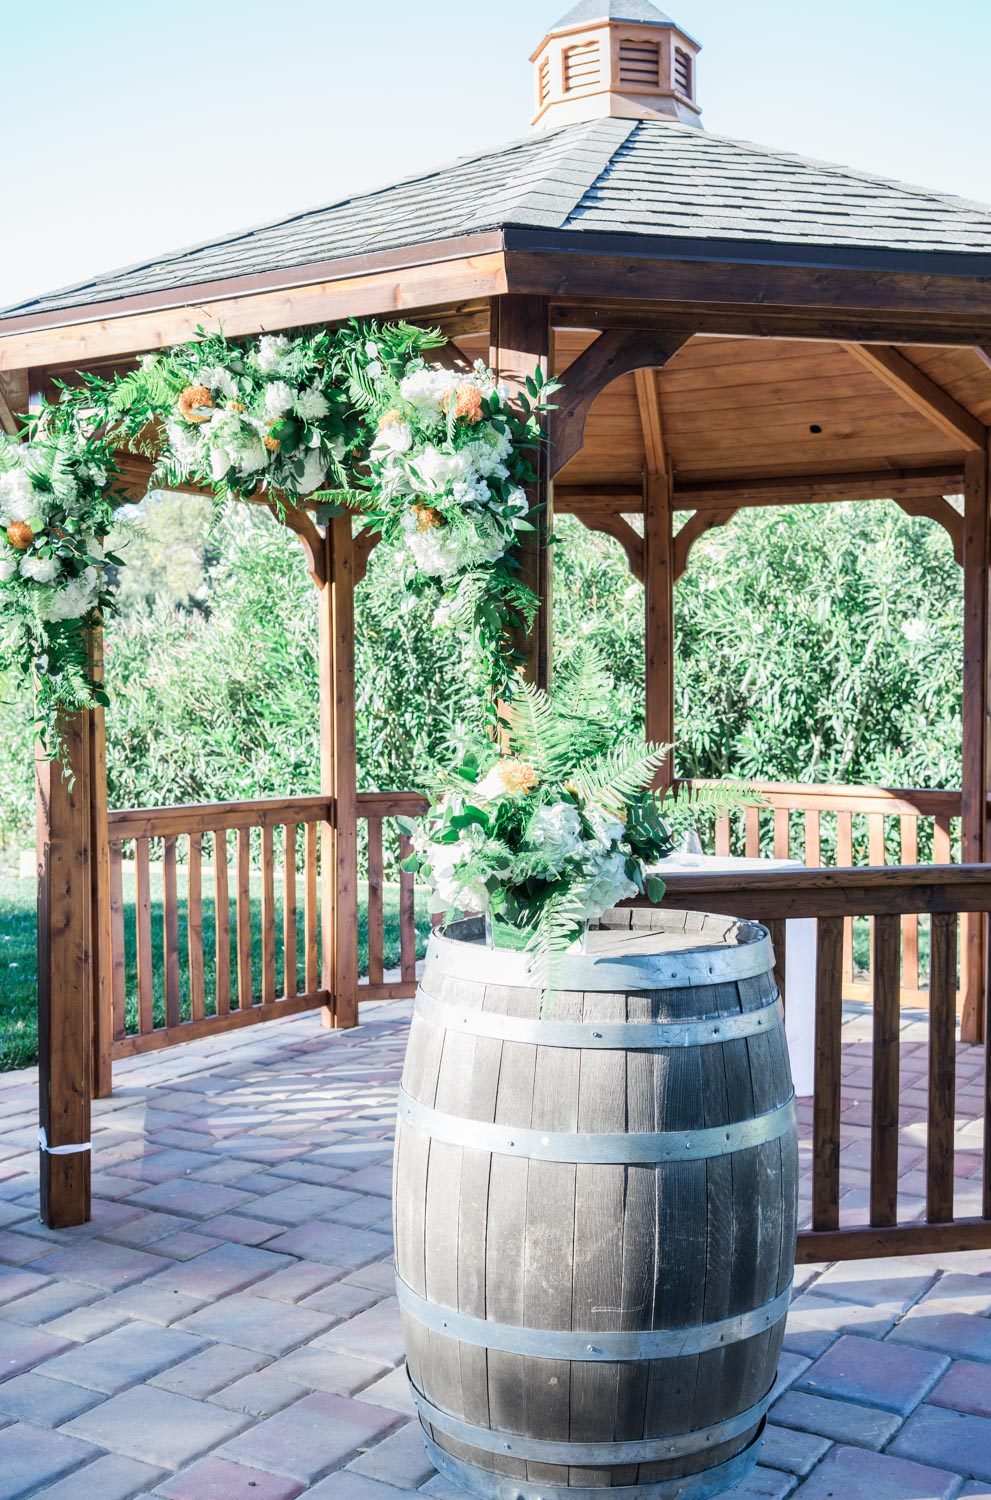 The Wedding Venue Altar with a Wine Barrell.